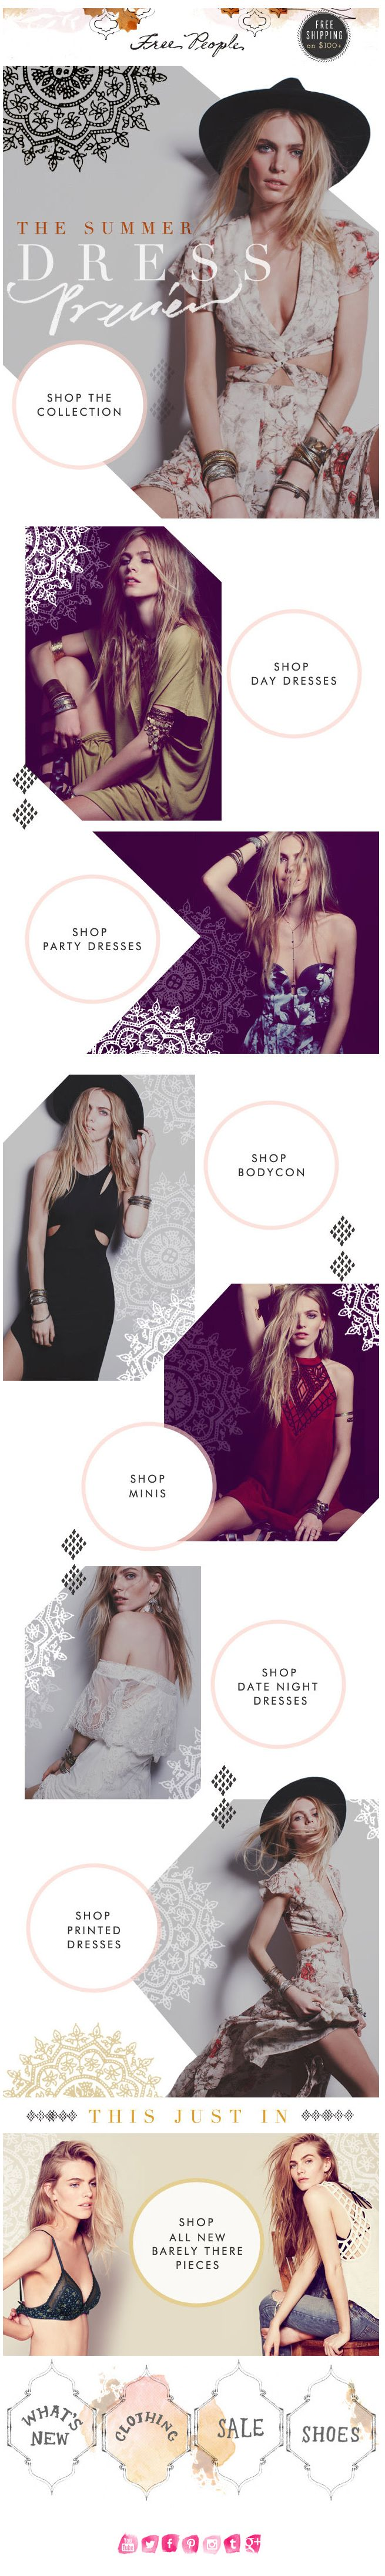 Free People : Category + Product Features